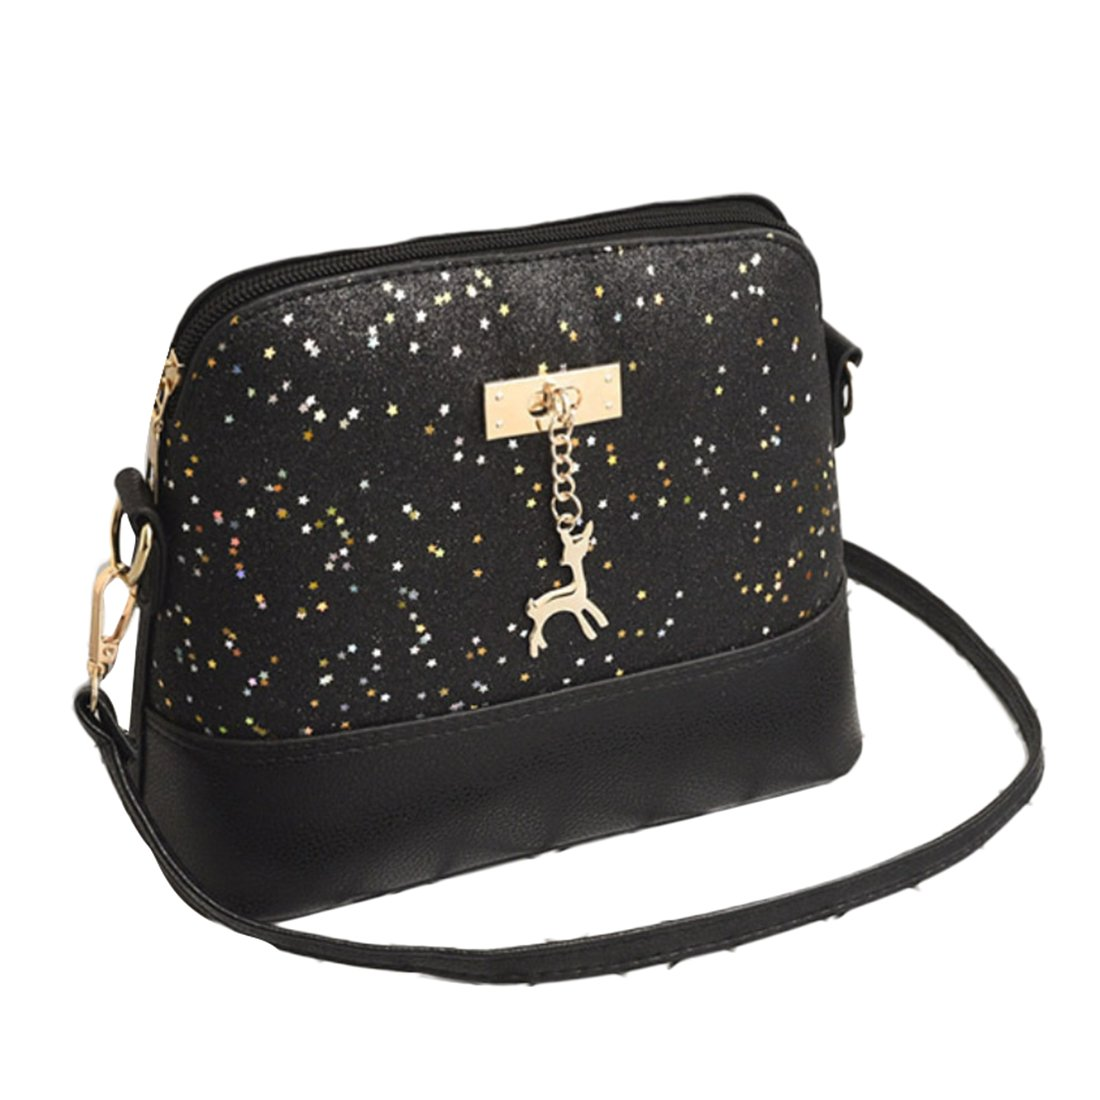 EROGE Women's Sequins Small Deer Shoulder Bags Leather Cross-body Bag Fashion Messenger Bag (Black)